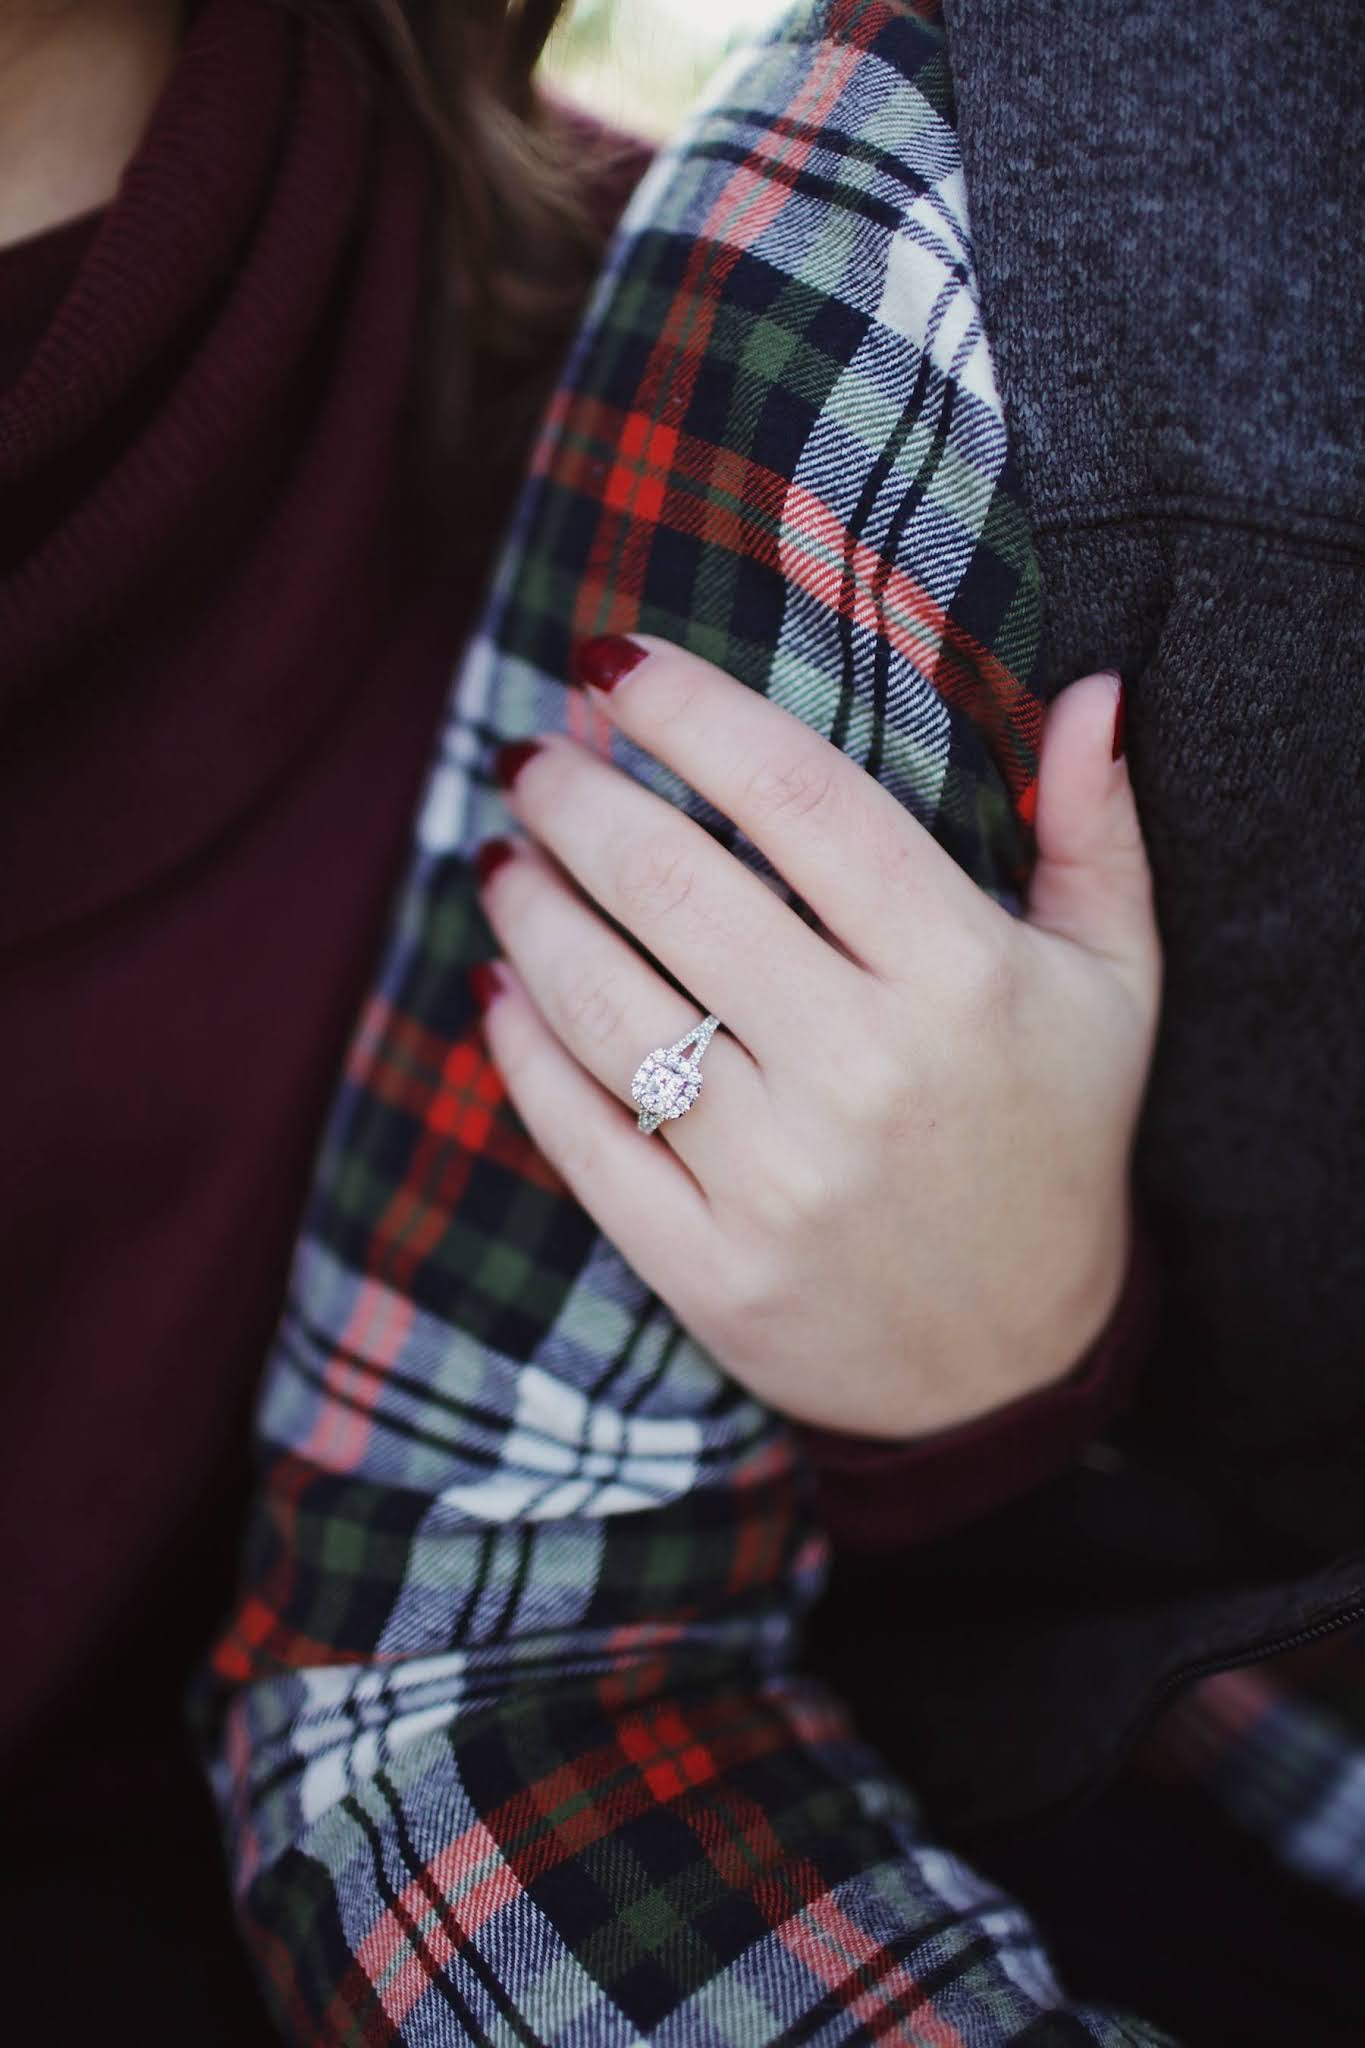 HOW CAN MARRIAGE CHANGE YOUR LIFE? - IS THERE ANY NEED TO MARRY SOMEONE